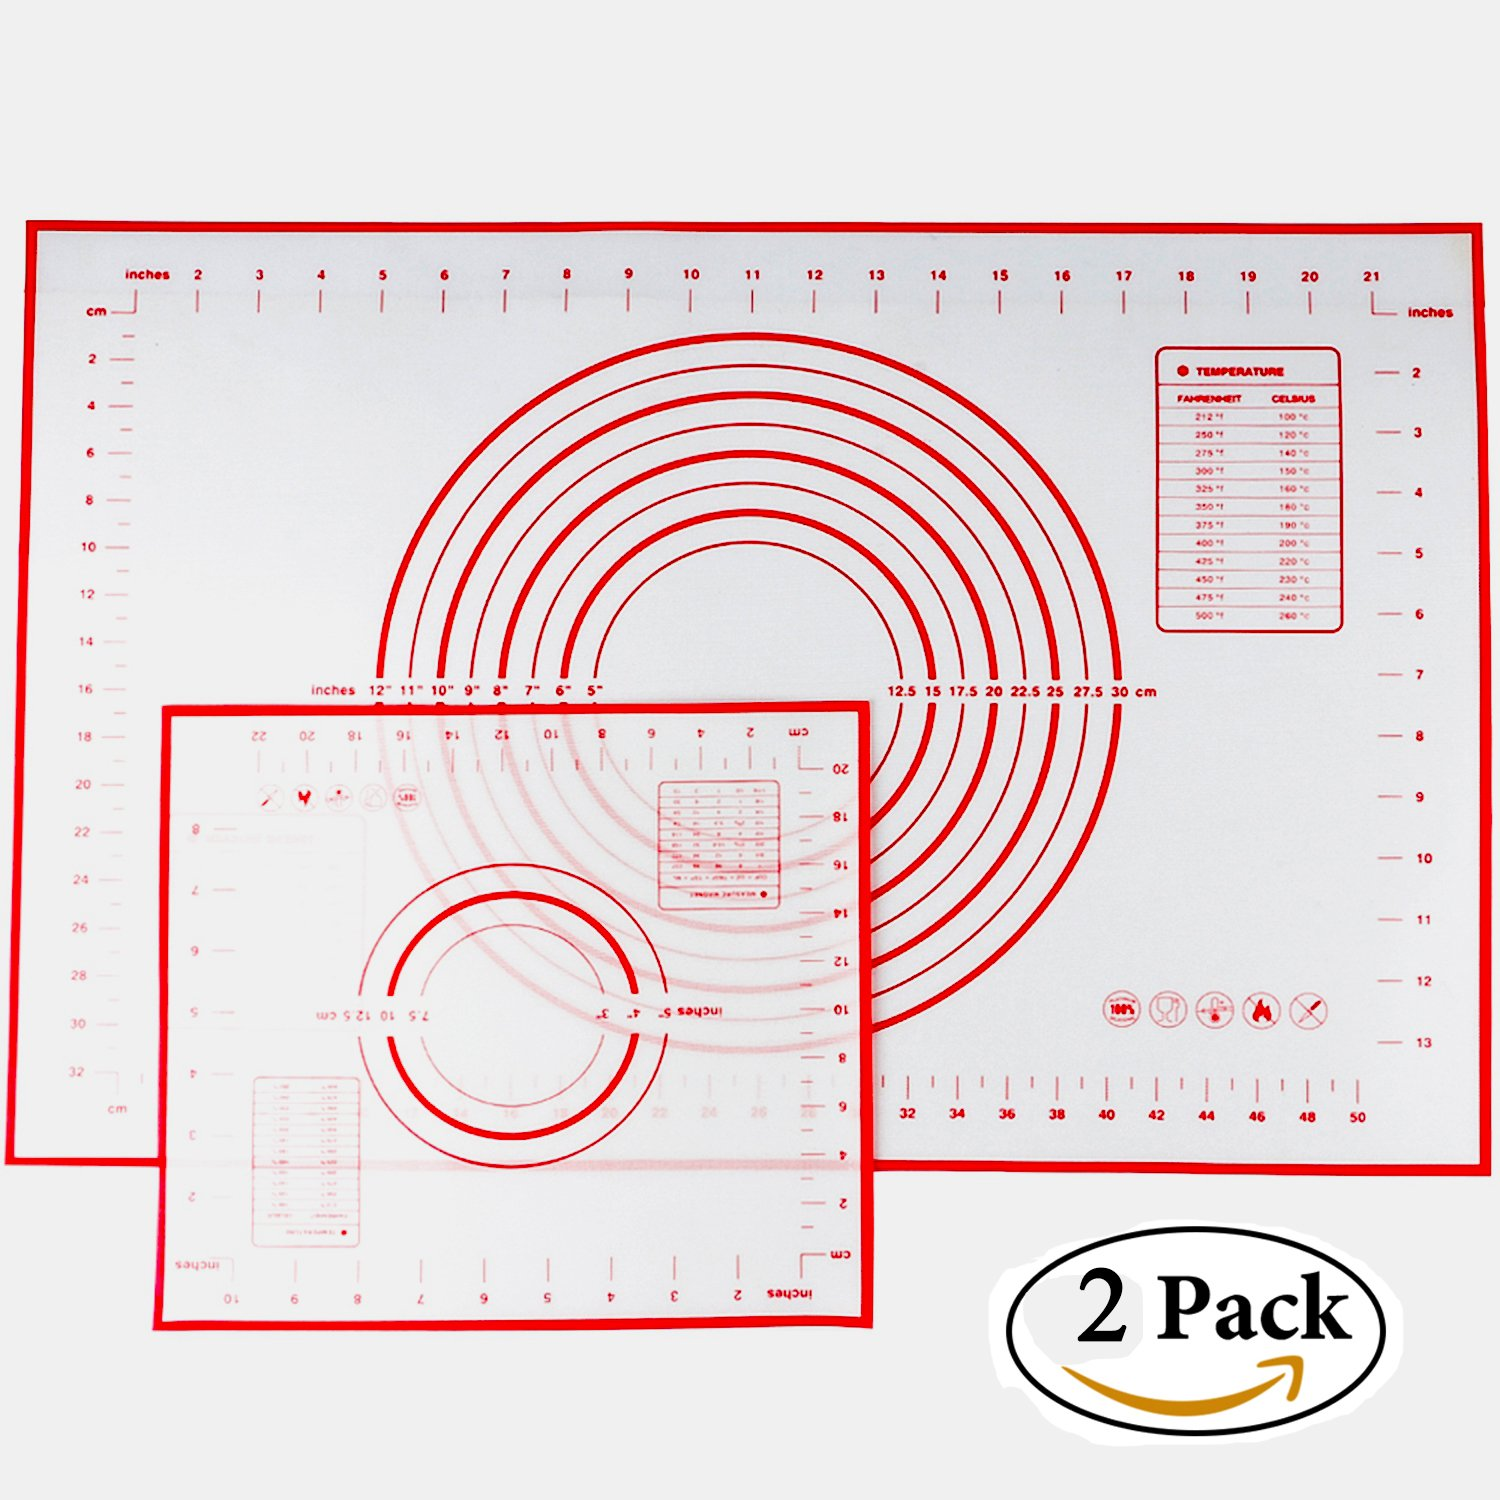 Silicone Baking Mat Set of 2, Non-stick Cooking Mat/Macaron Mat/Dough Rolling Mat with Measurements, Large 24'' x 16'' Small 11.41'' x 10.23''